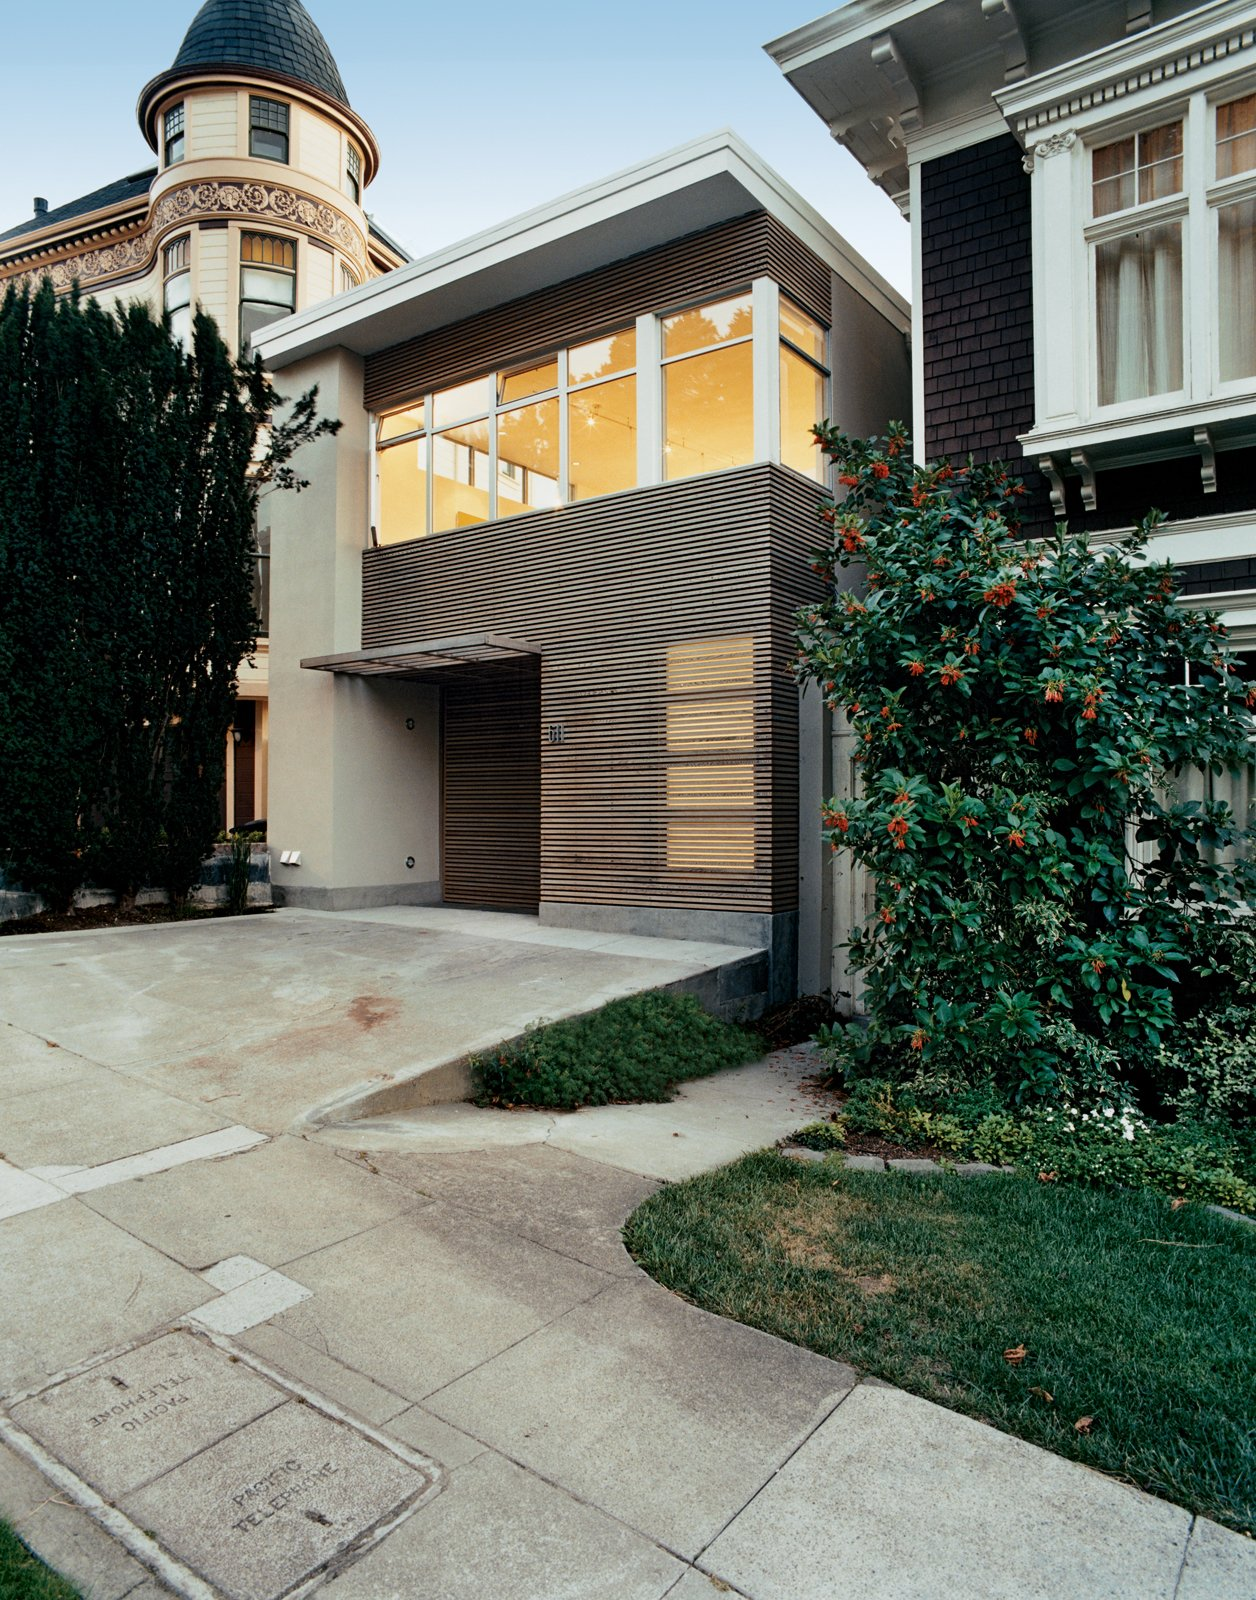 Exterior, House Building Type, Wood Siding Material, and Flat RoofLine The housees that circle San Francisco's Buena Vista Park run the gamut from wedding-cake Victorian to Scandinavian modern. Architect Cass Calder Smith aimed to create a façade that contextually relates to the adjacent ornate ones yet is purely modern.  Best Photos from Standout in a Crowd